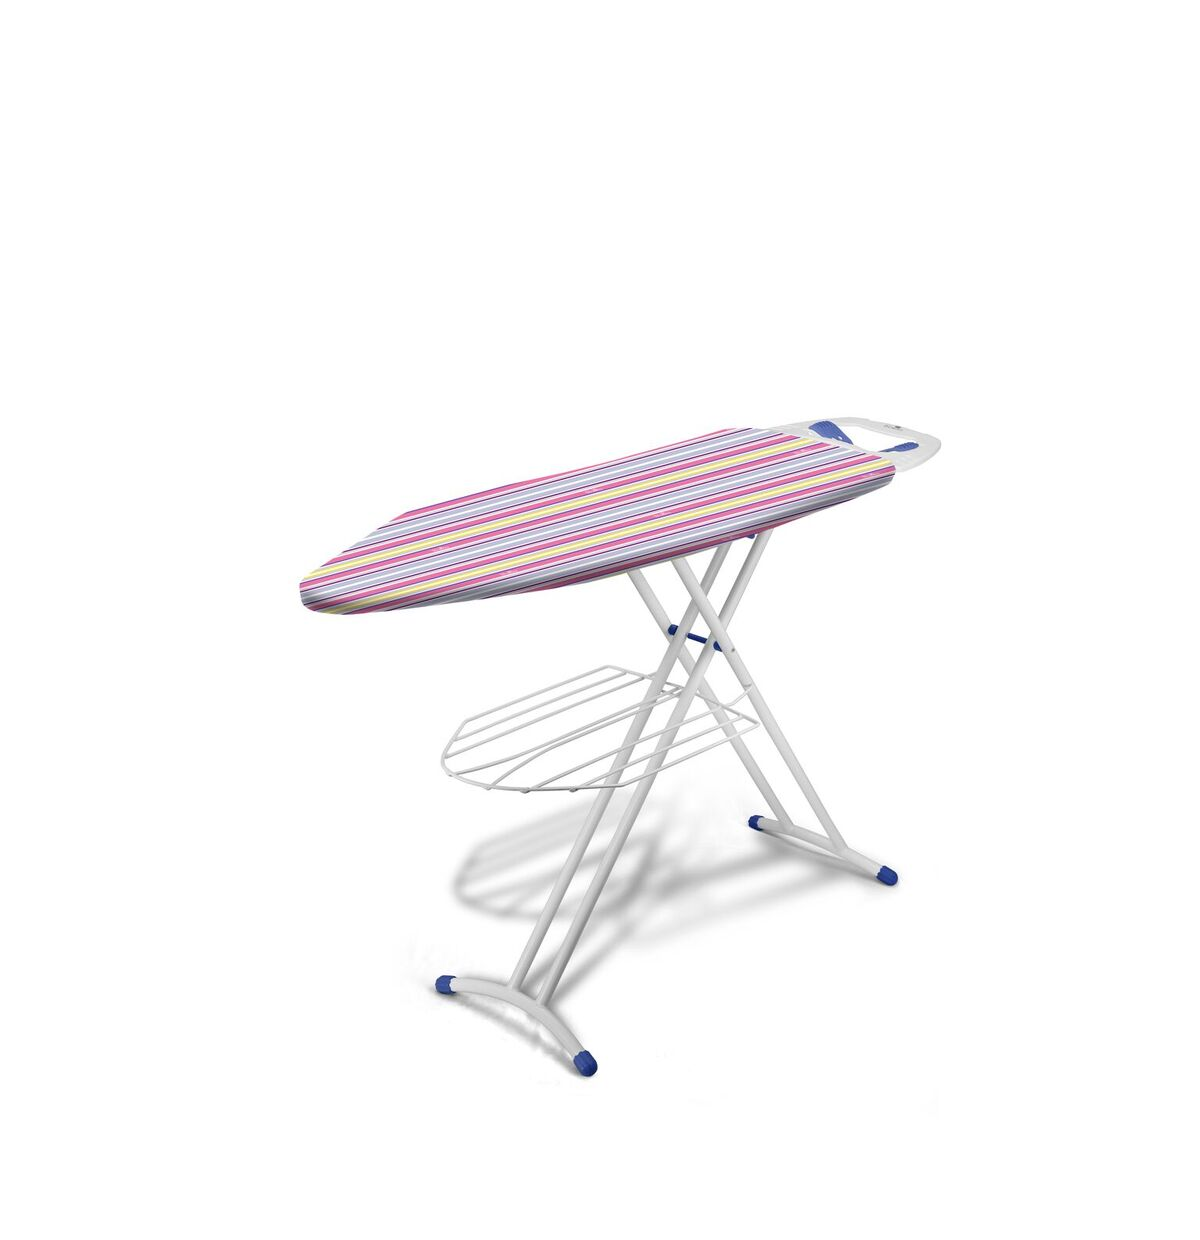 Pride Ironing Board Powder Coated Steel Ironing Boards in Multicolor Colour by Bonita